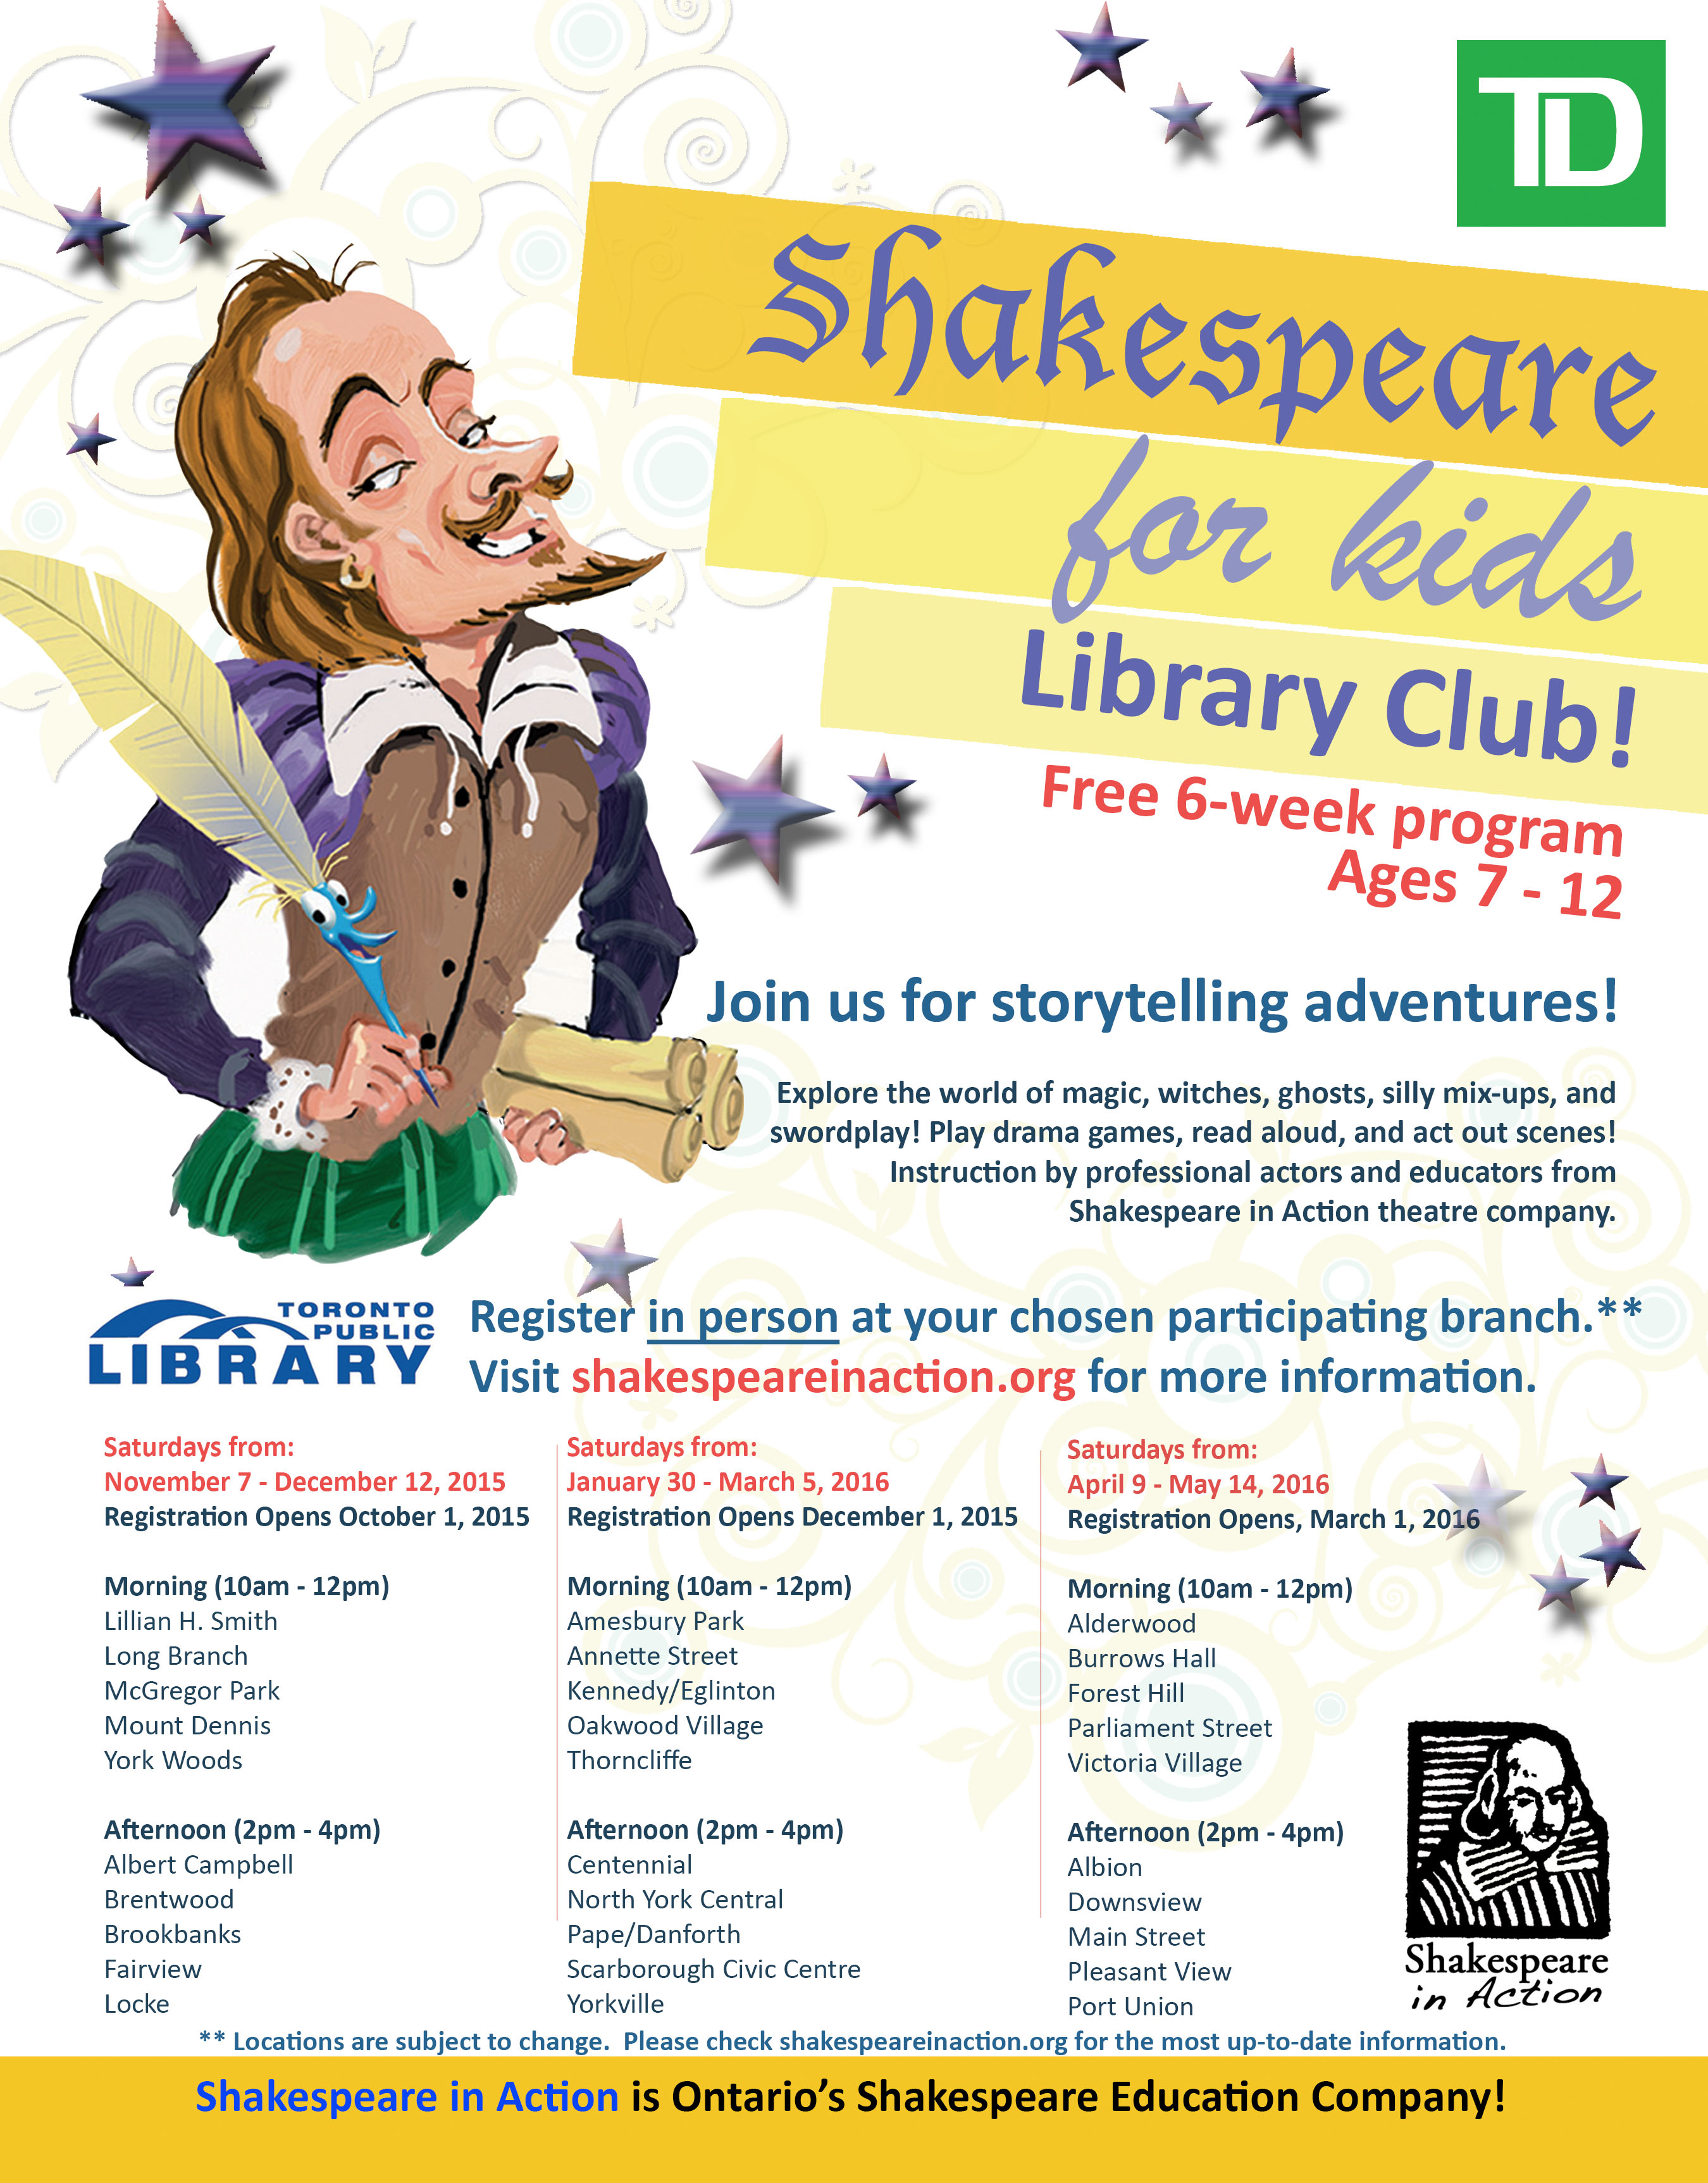 Shakespeare for Kids Library Club